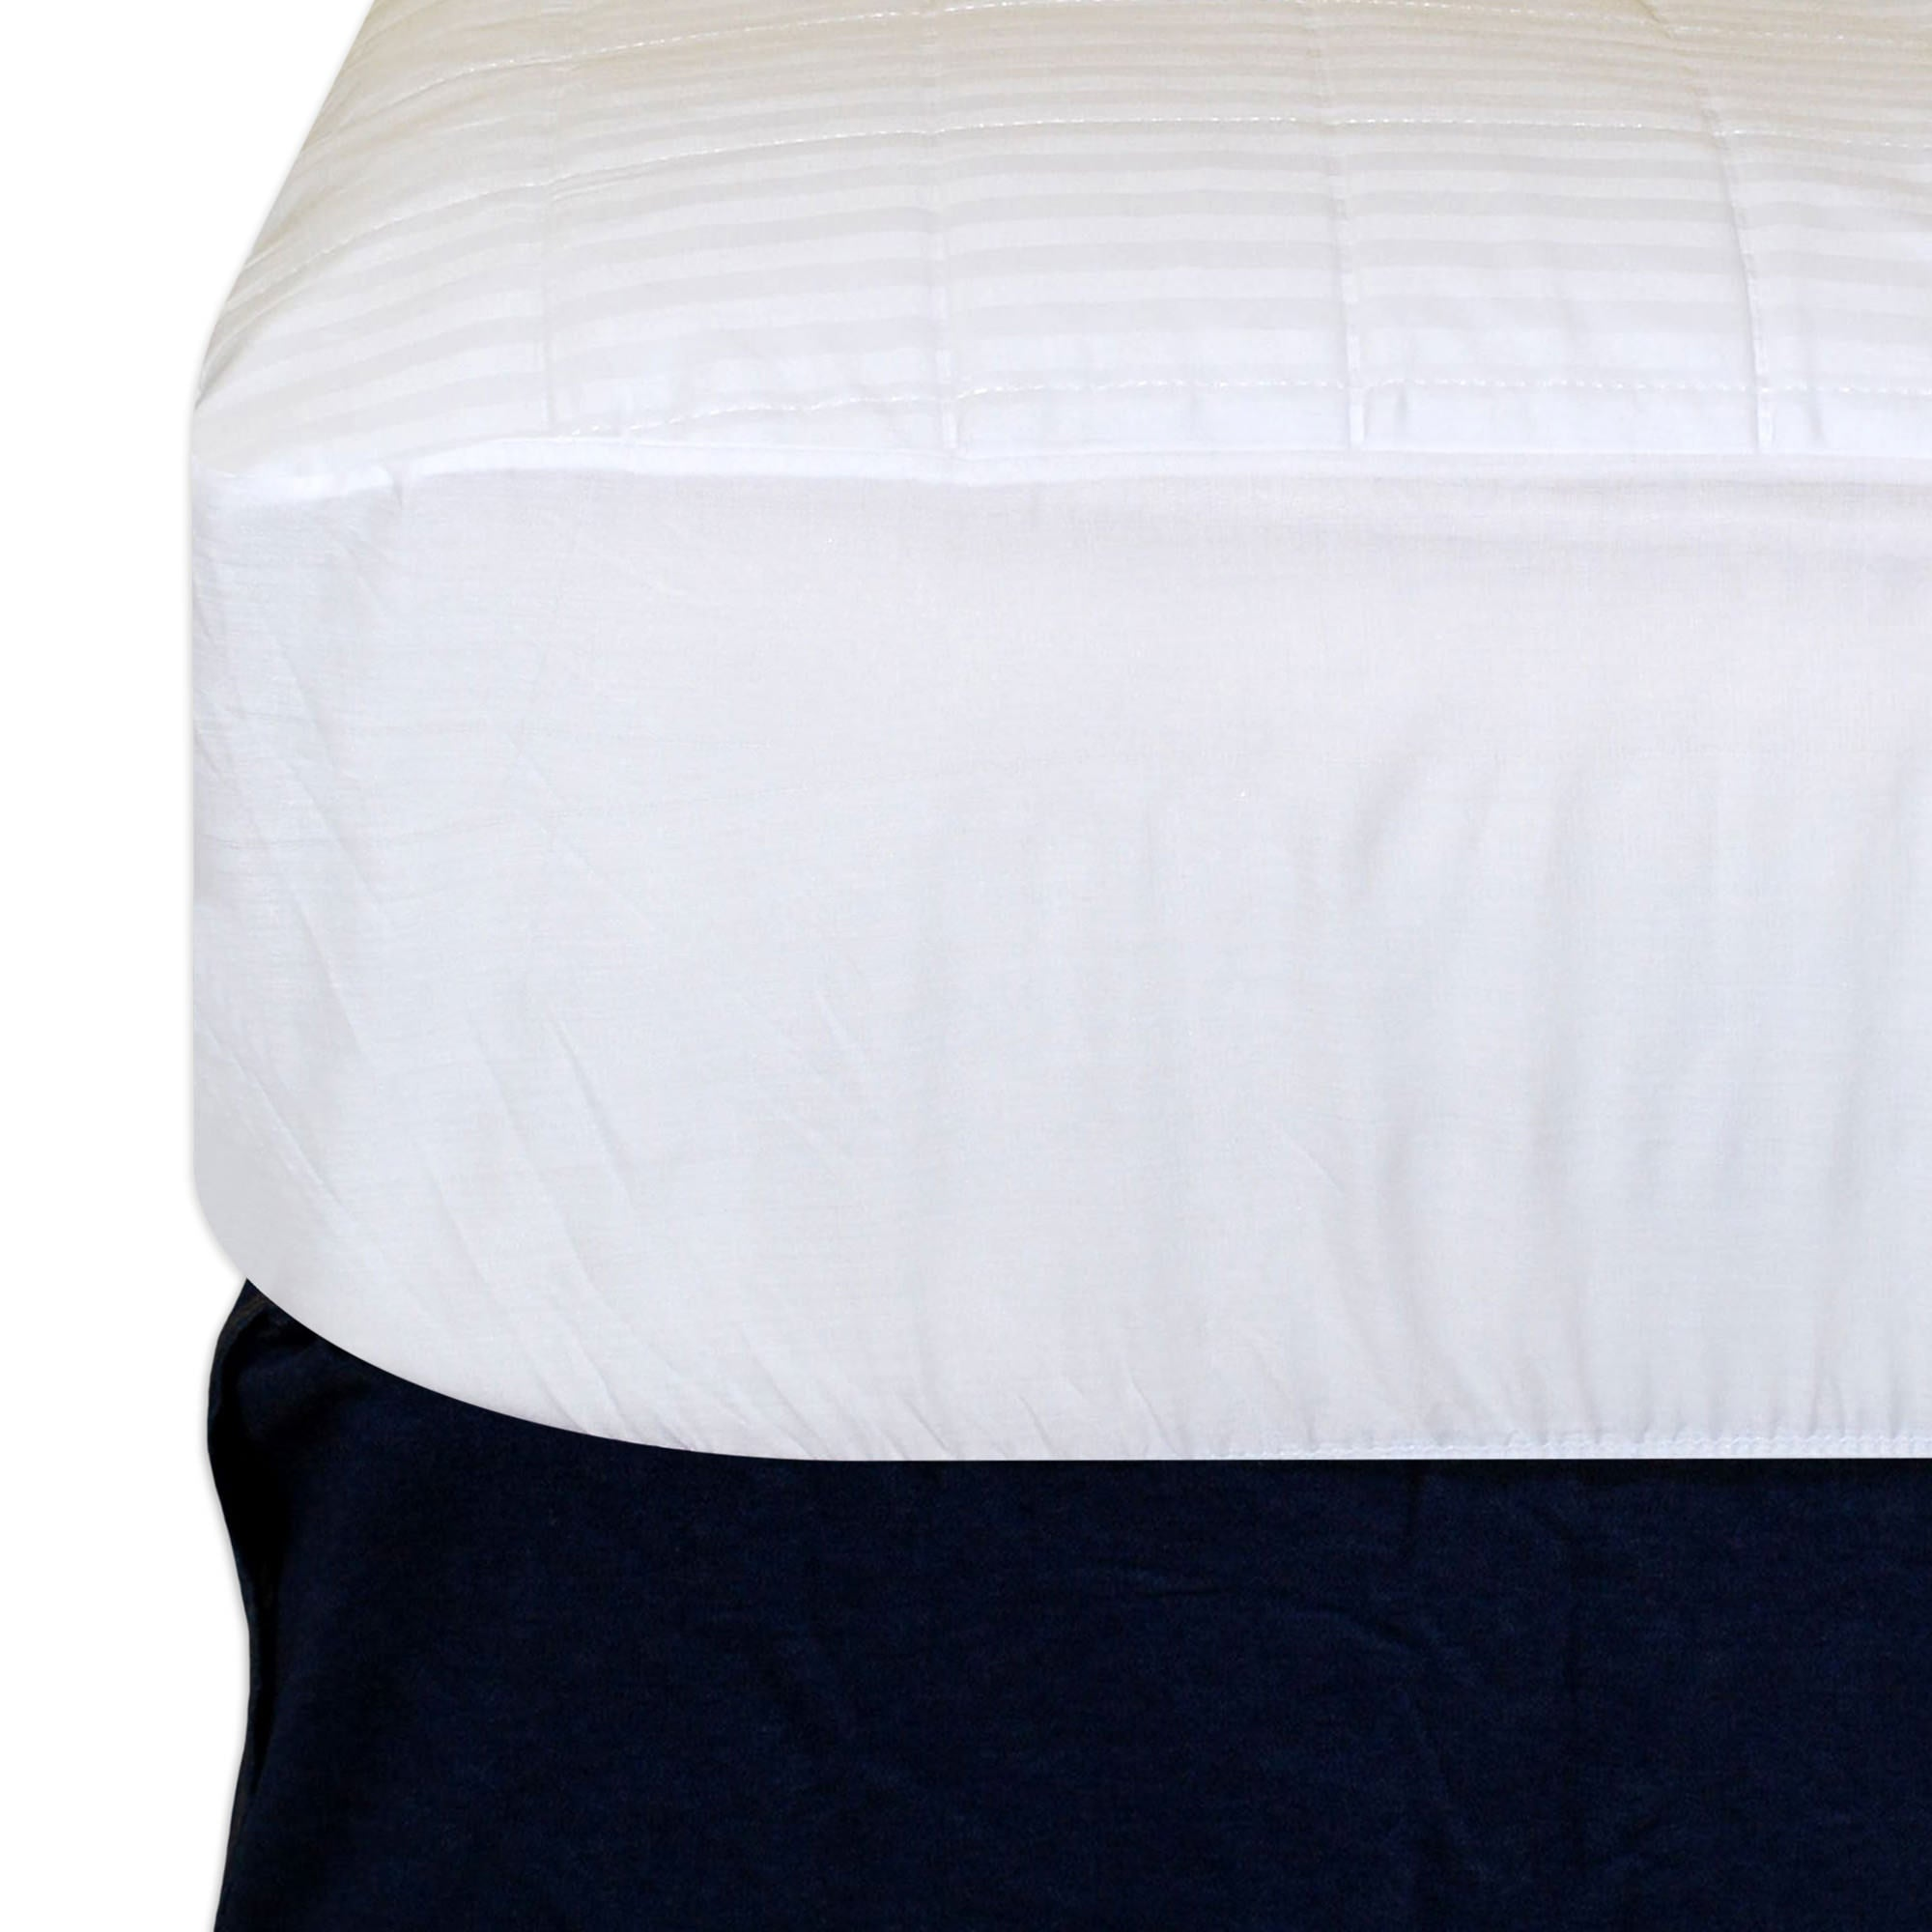 Bedding-Cotton Top Waterproof Mattress Pad, Waterproof (Fitted)